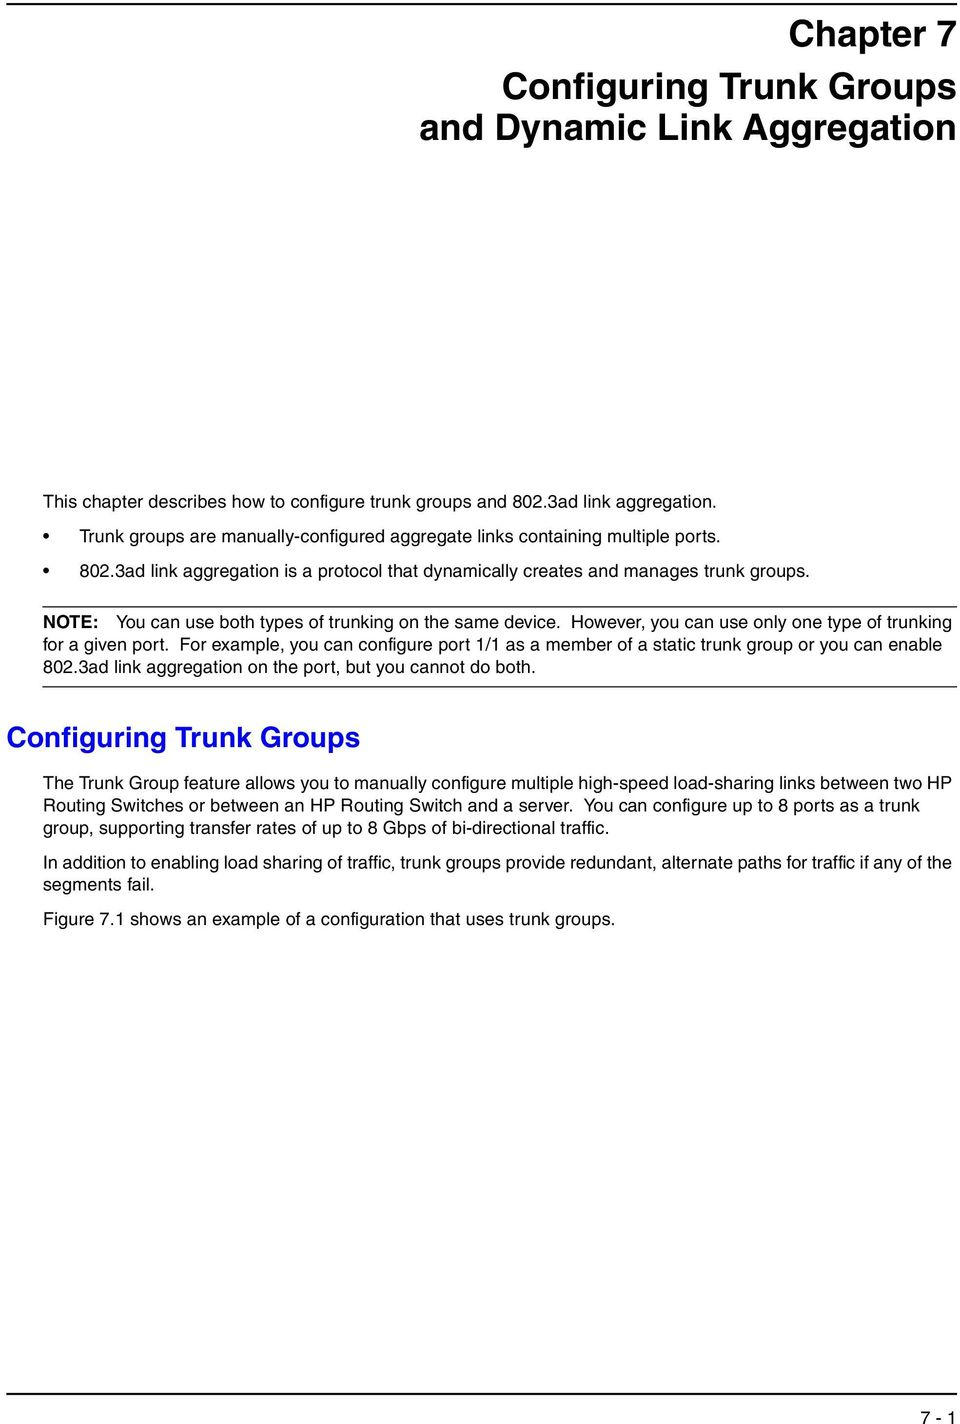 Chapter 7 Configuring Trunk Groups and Dynamic Link